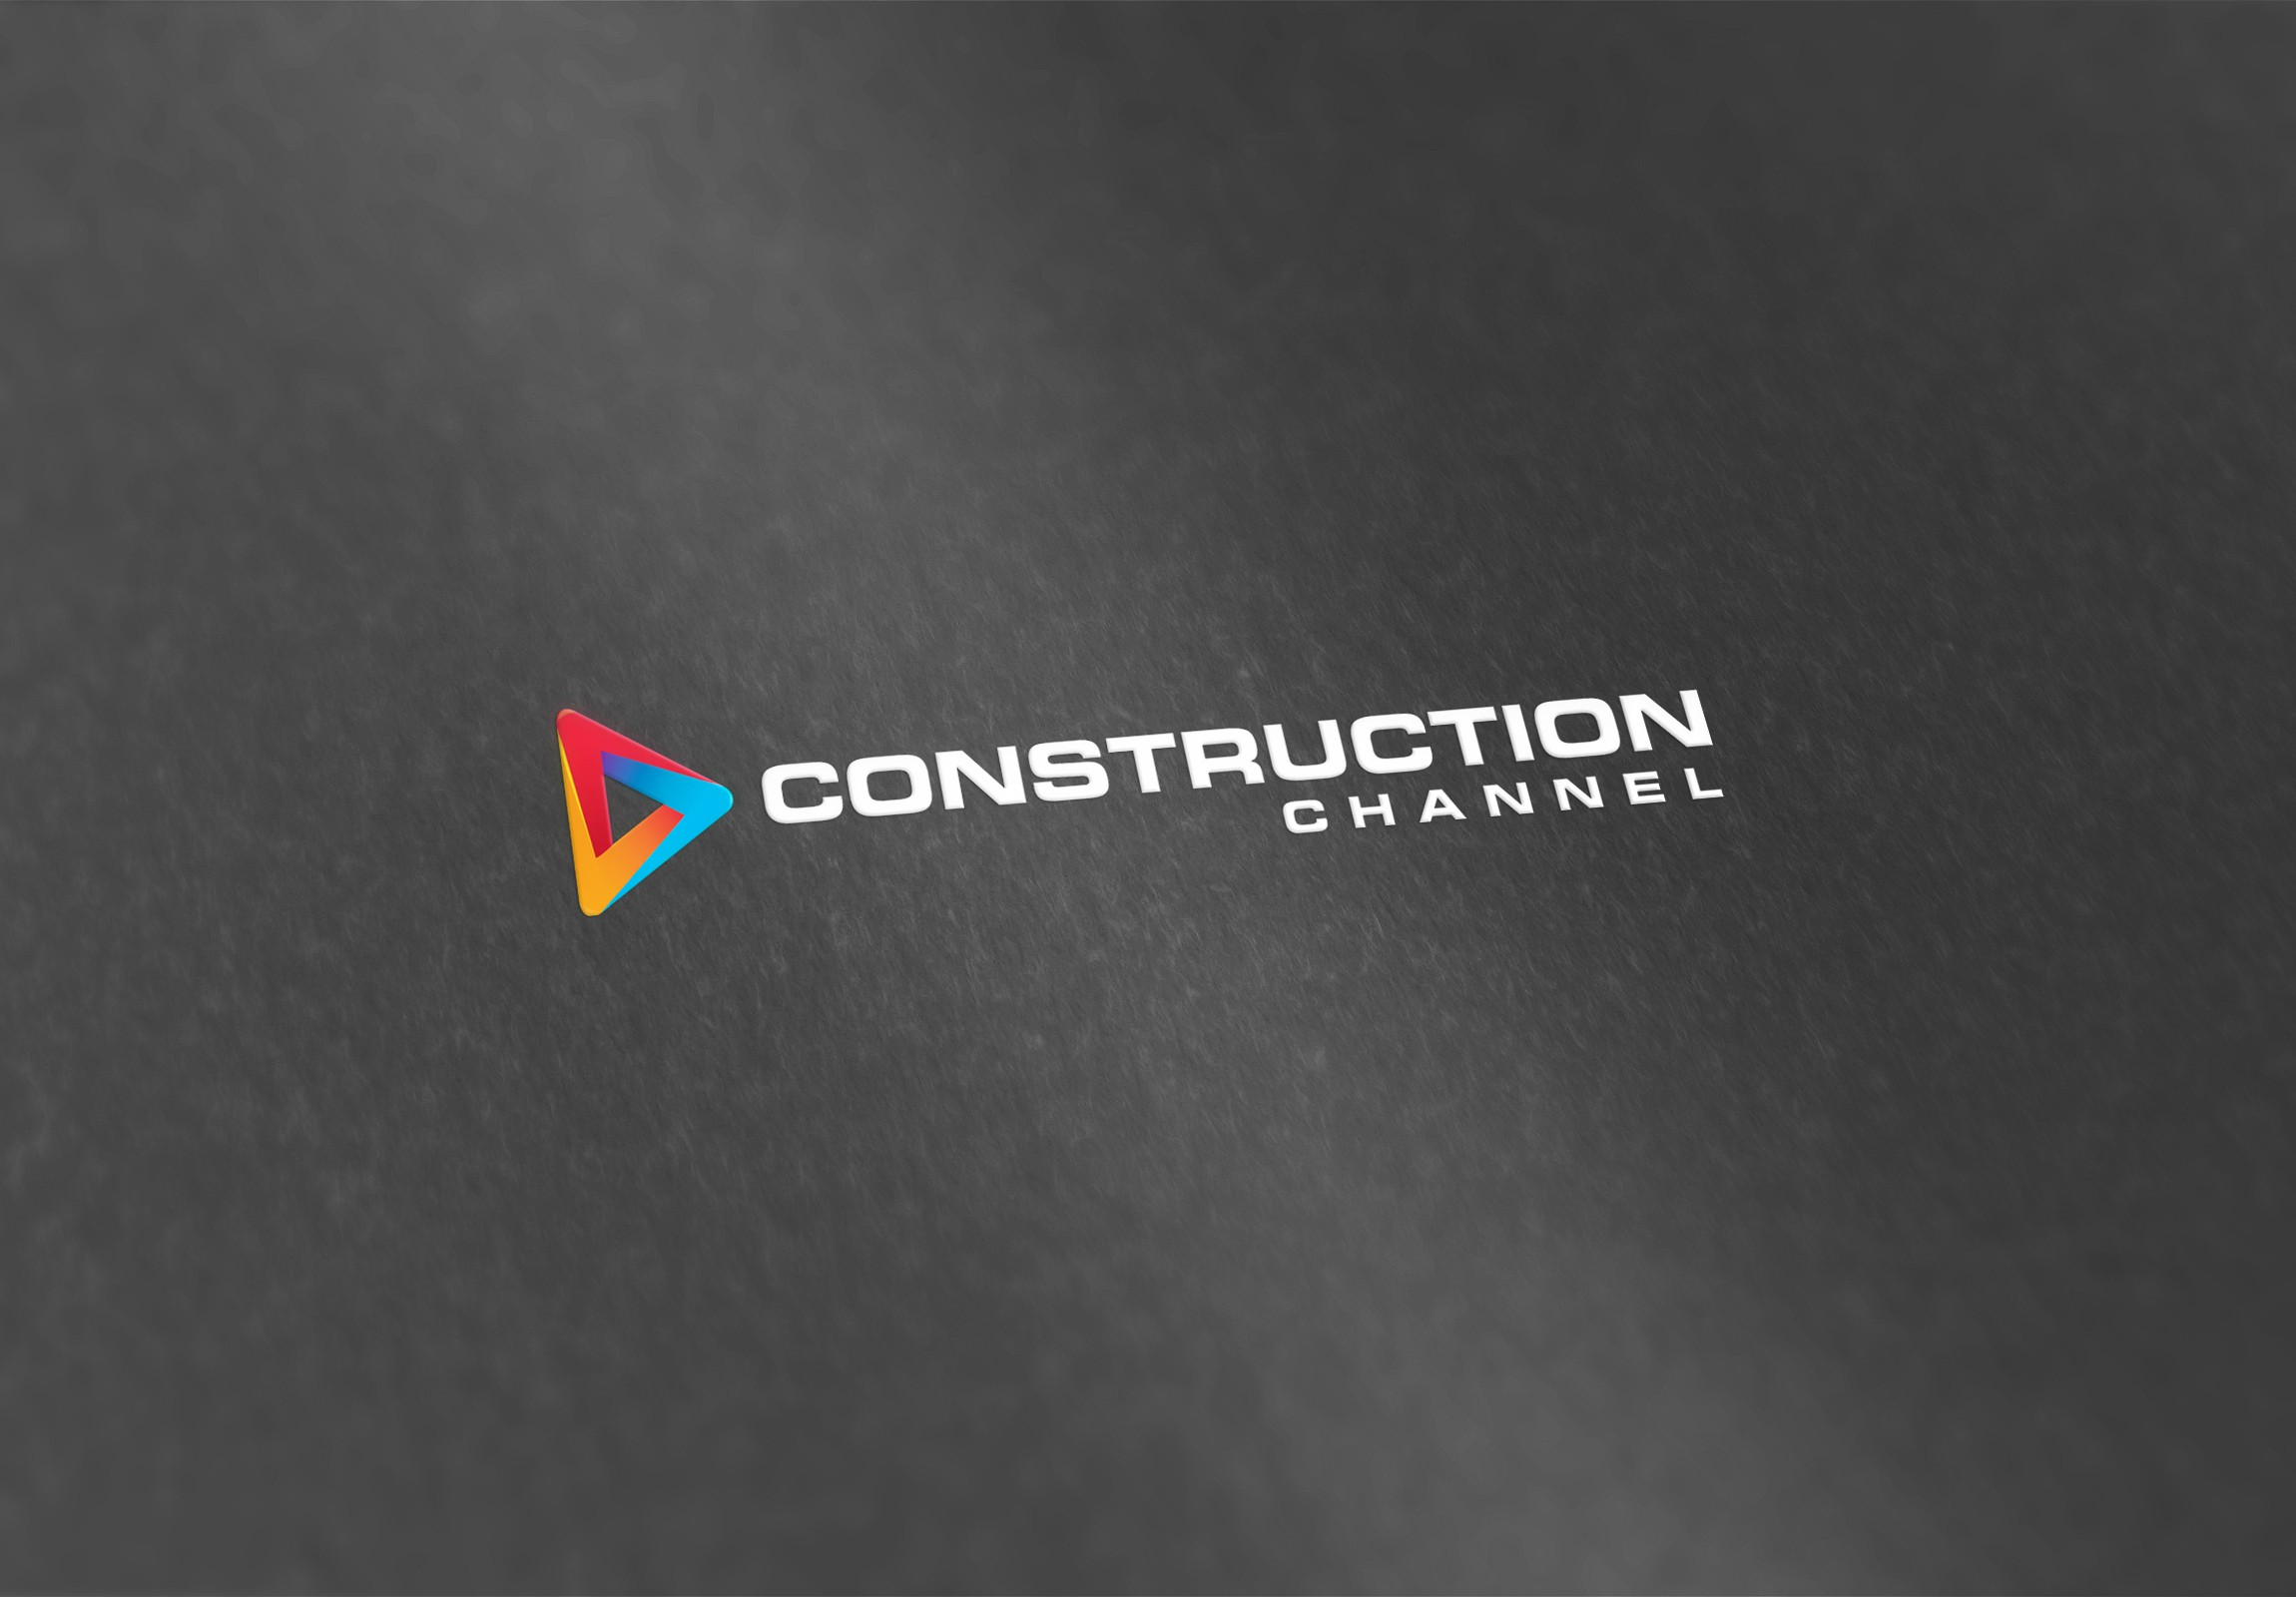 The Construction Channel: 24 Hours of Construction TV